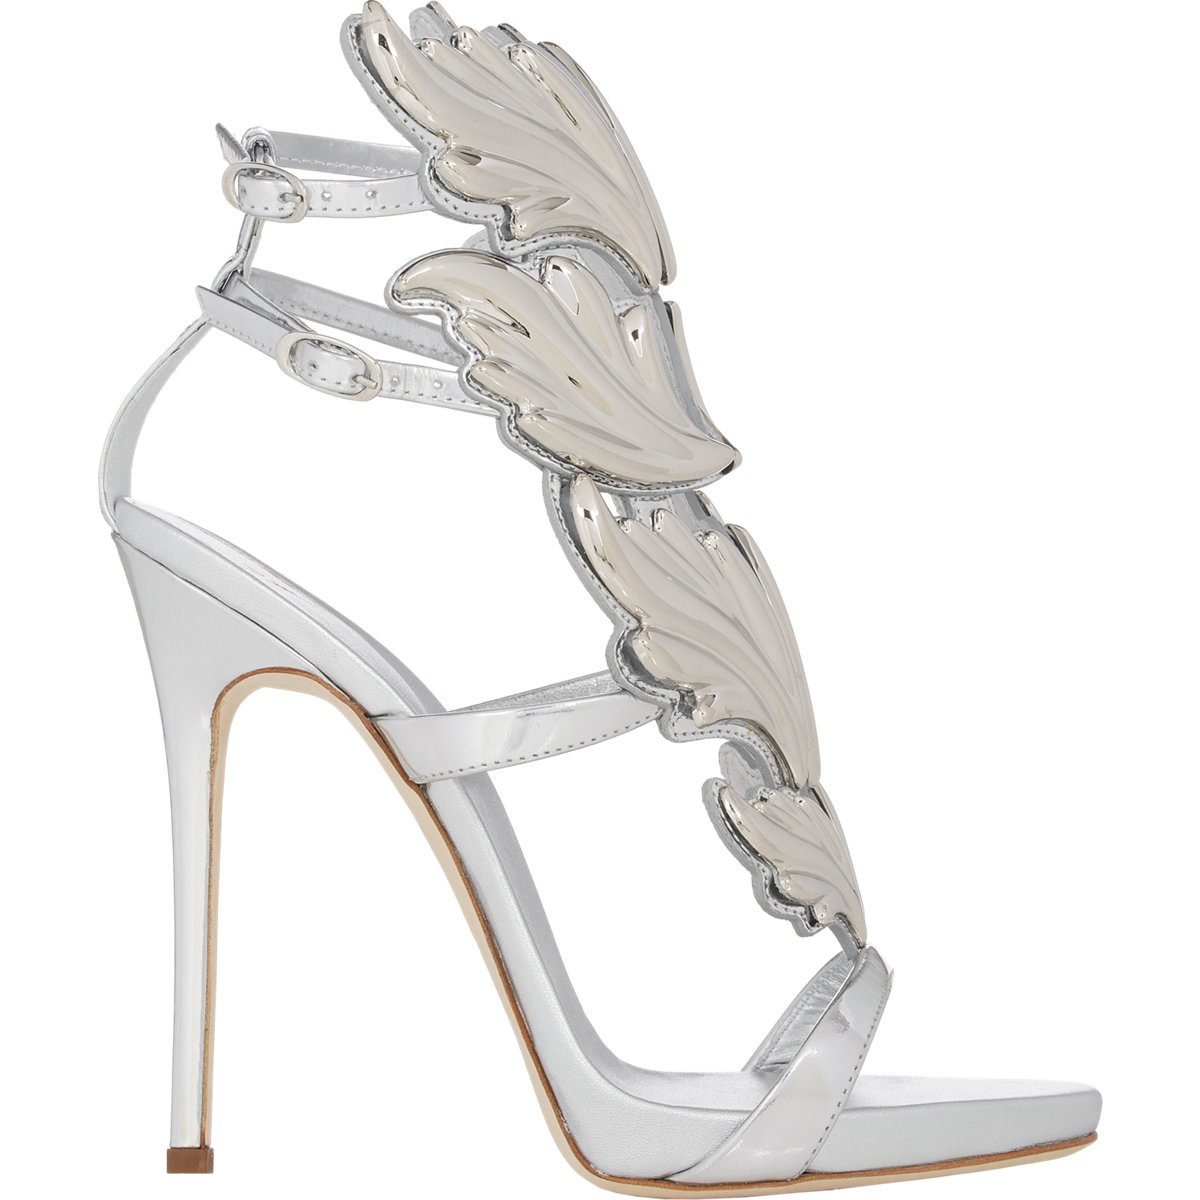 a161c833a ... 50% off lyst giuseppe zanotti cruel summer sandals in metallic 246f4  3820a